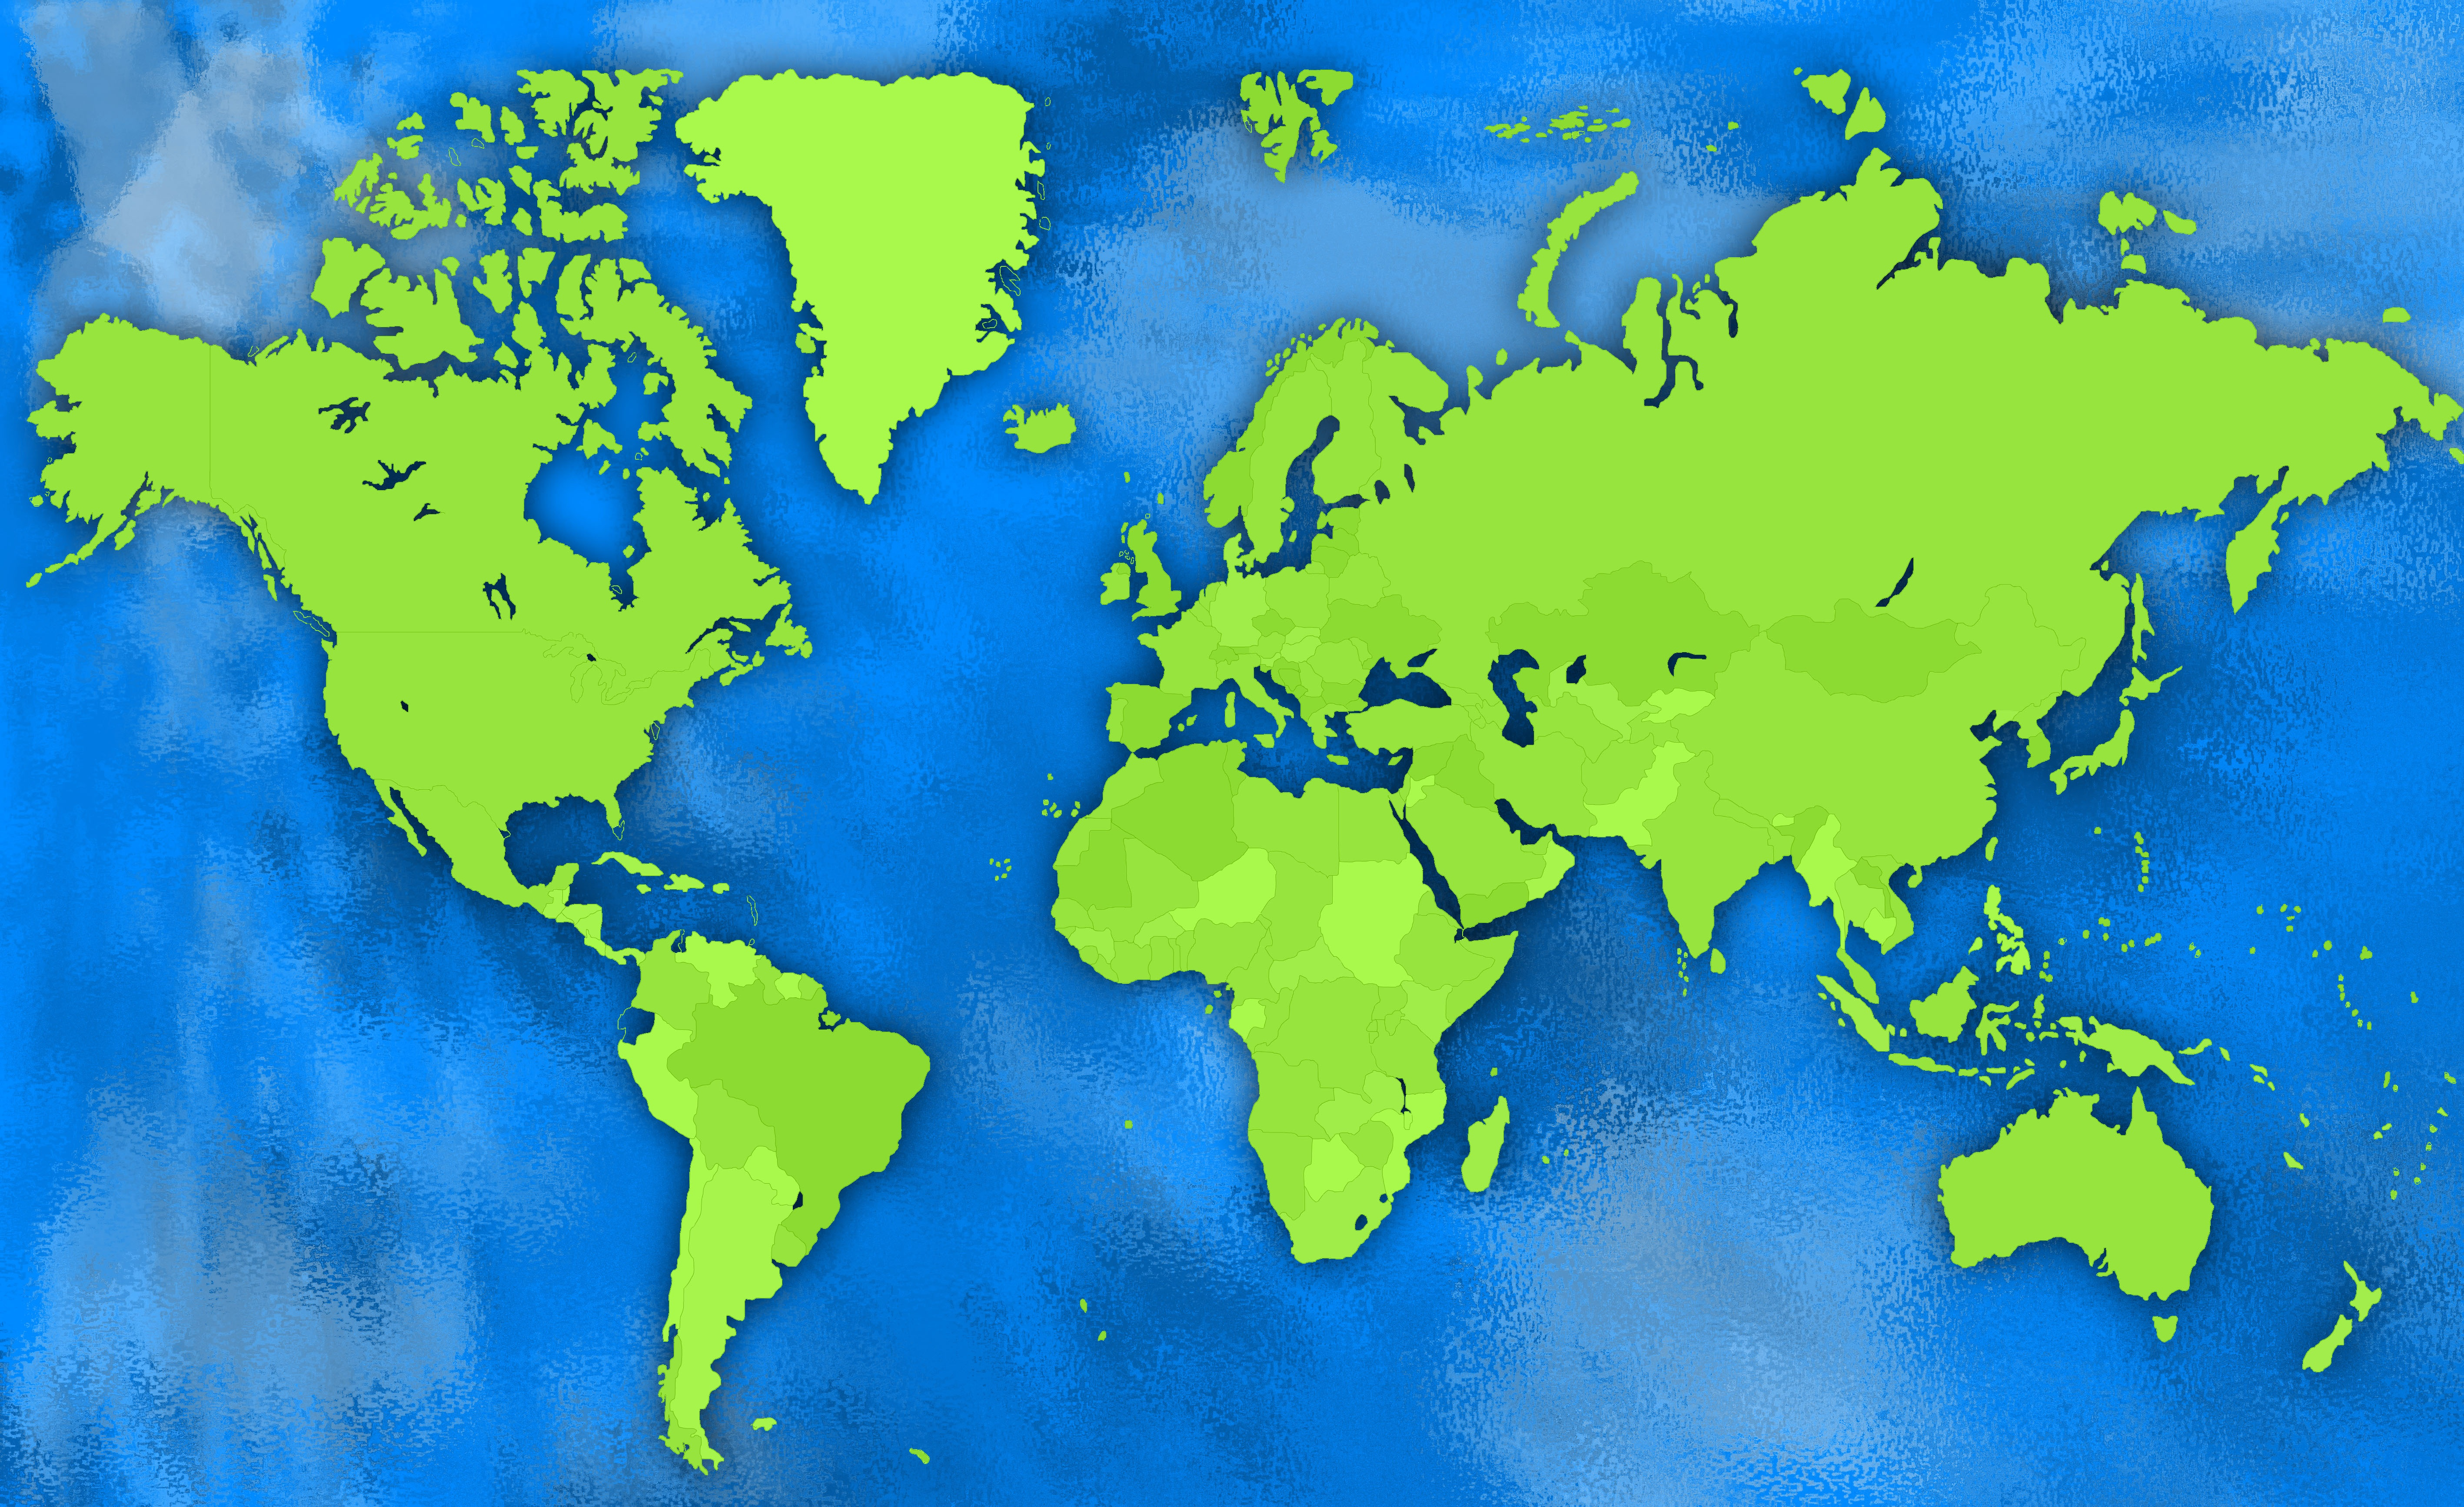 Background with world map free image background with world map free download gumiabroncs Image collections